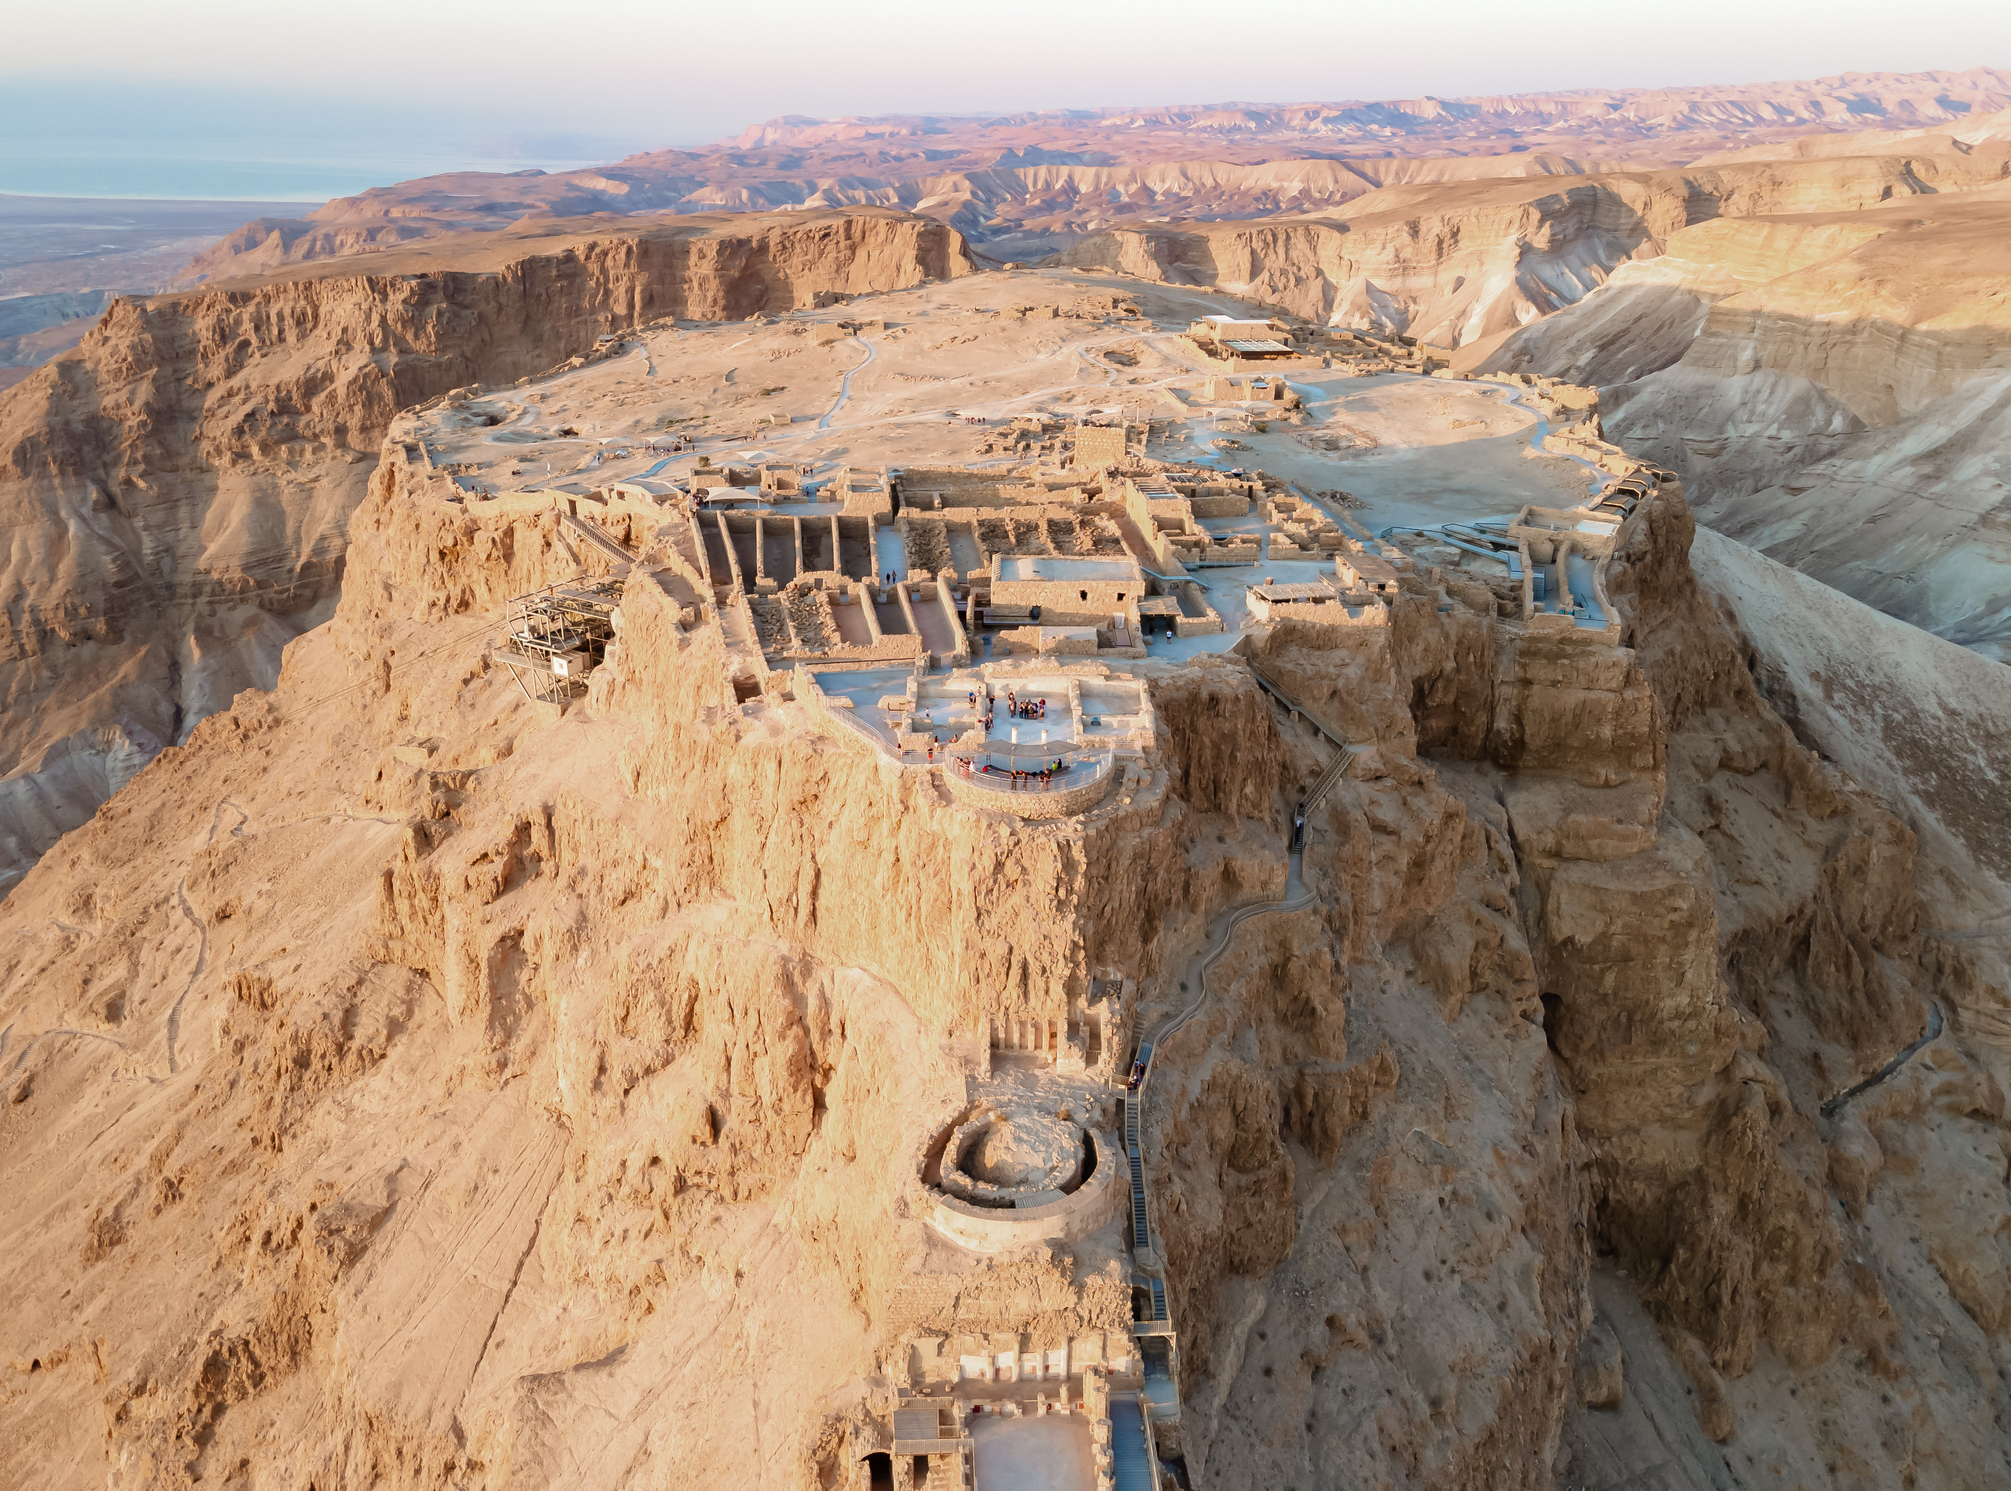 Masada is a Roman fortress in Israel that overlooks the Dead Sea